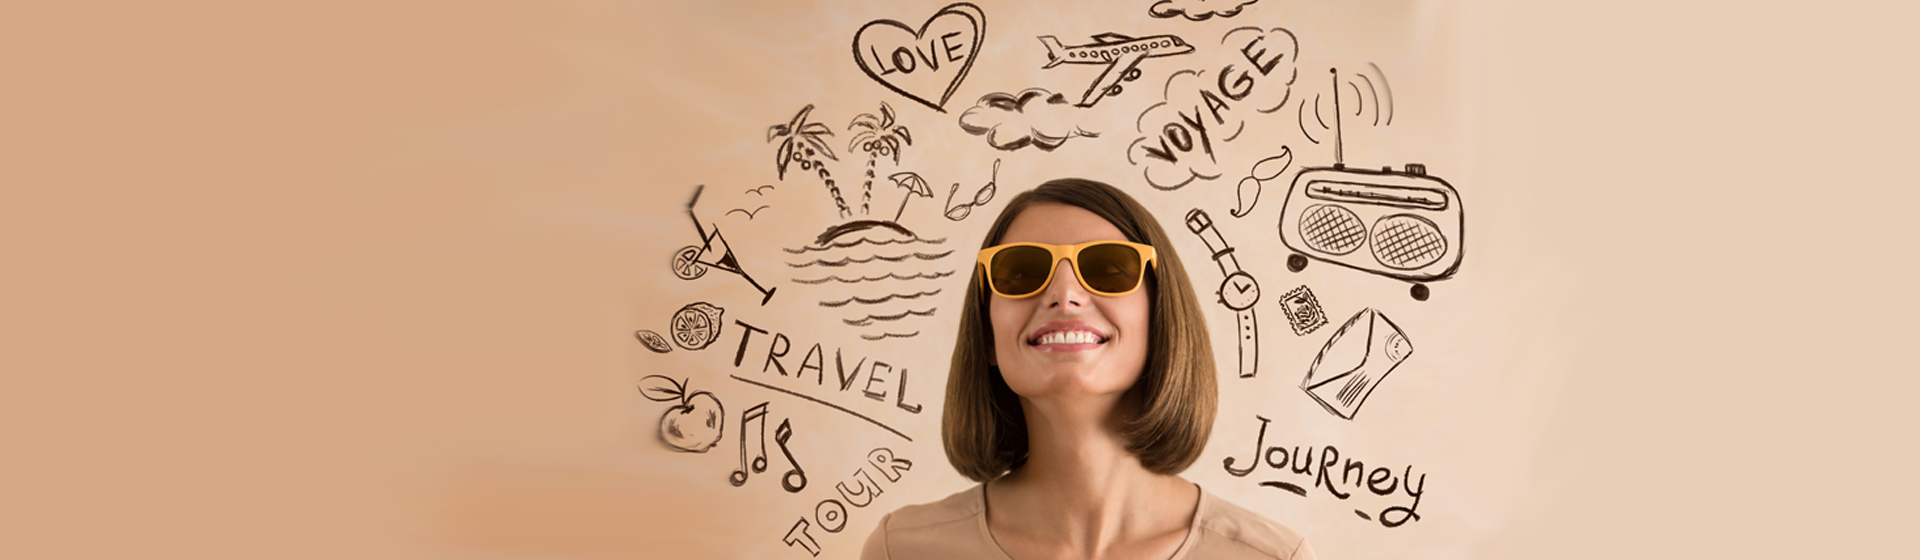 Woman thinking about places to travel